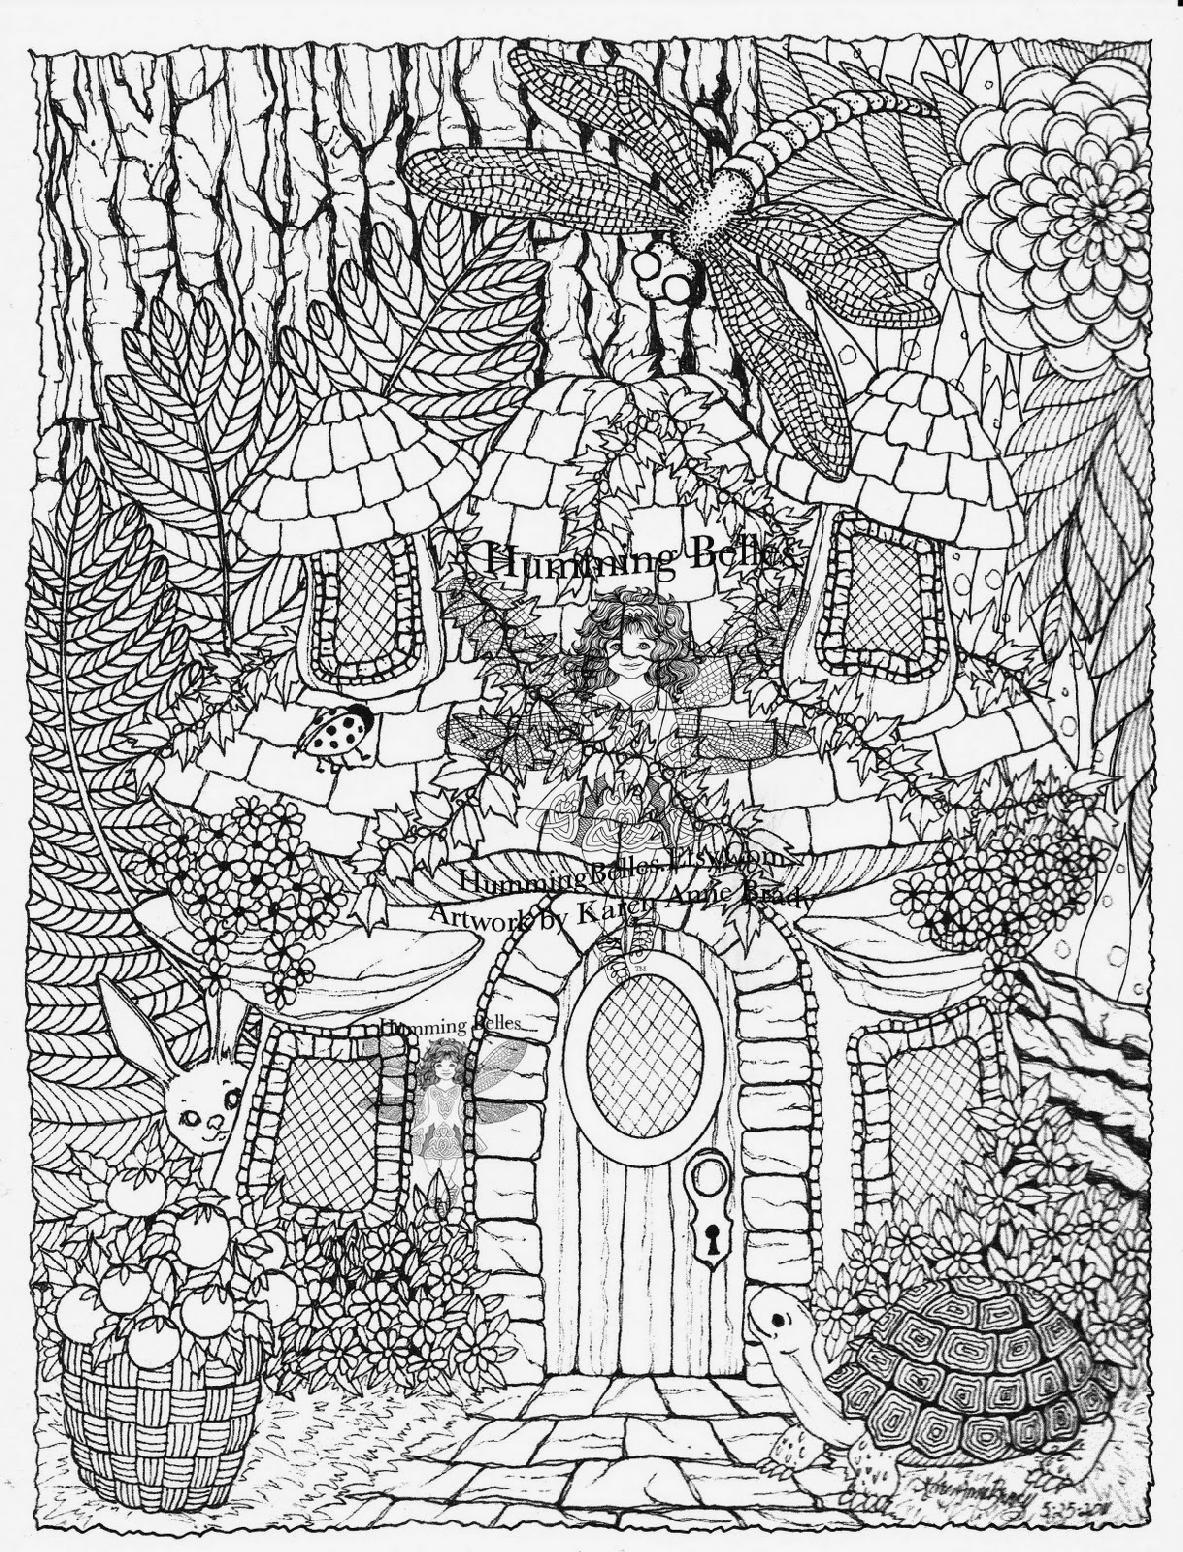 free printable coloring pages for adults and kids detailed coloring pages to download and print for free coloring pages printable adults kids for free and